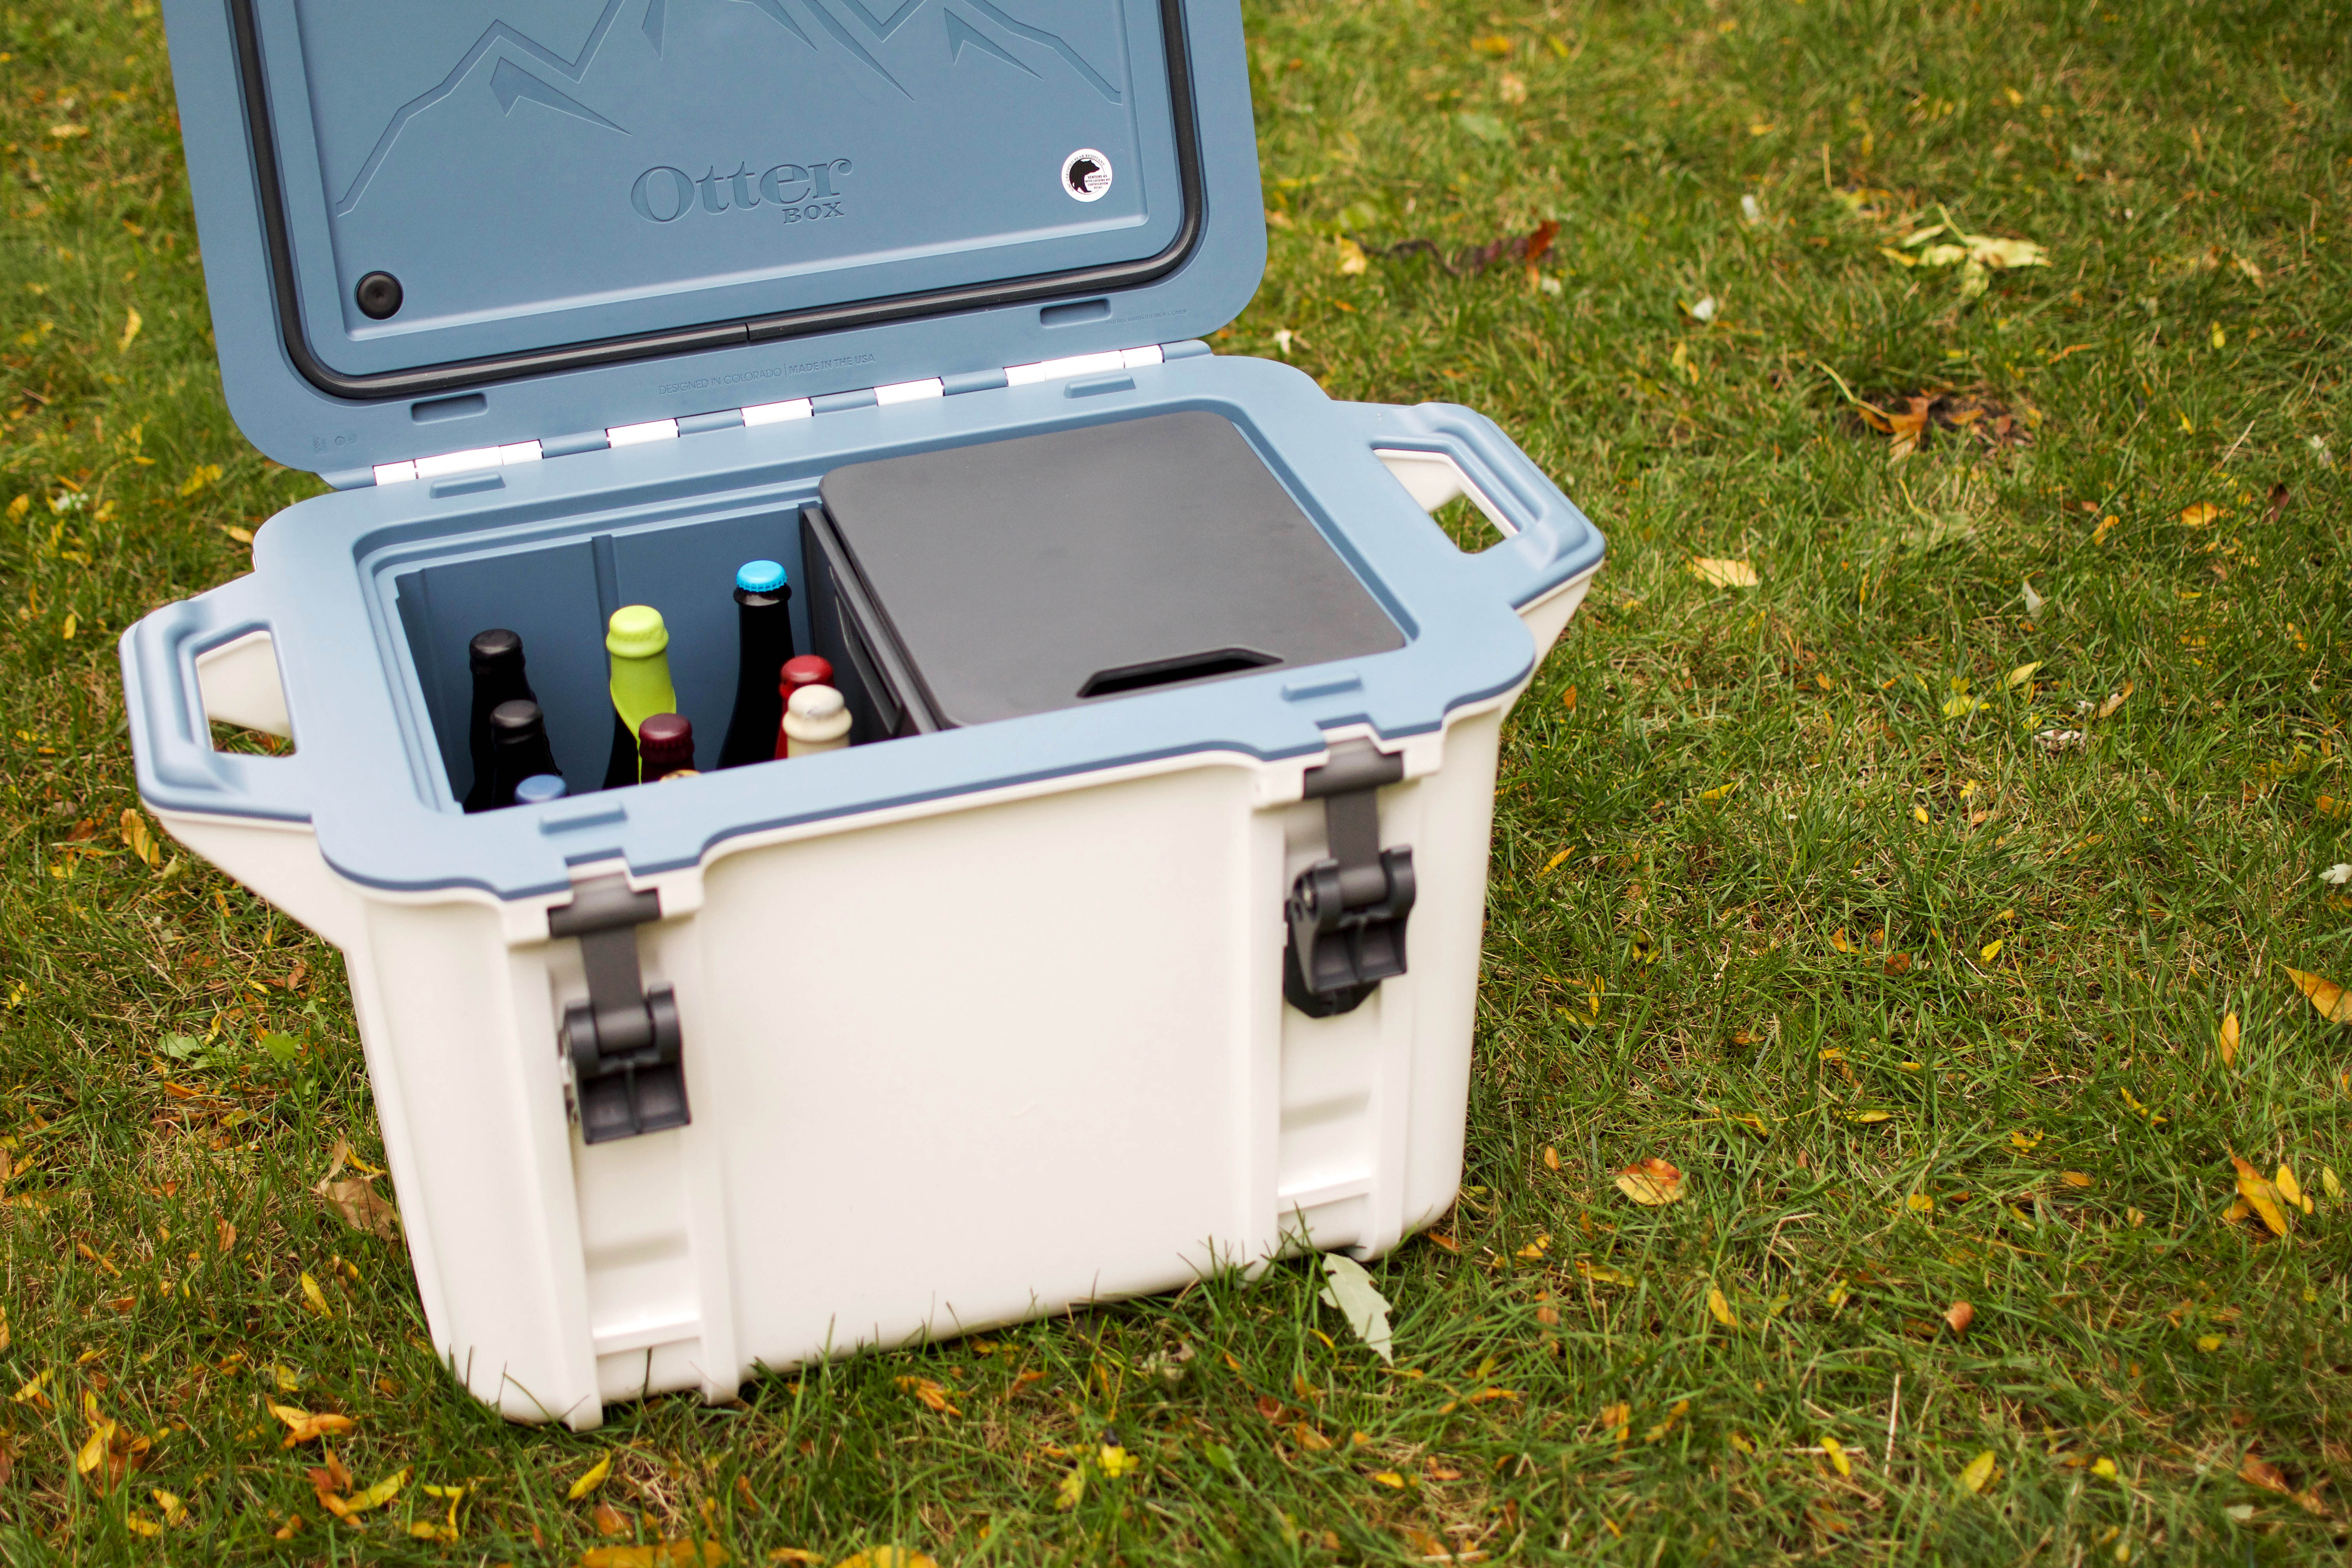 promo code 10287 2a327 The New OtterBox Venture 45-Quart Cooler Is Amazing - Daddy's Grounded